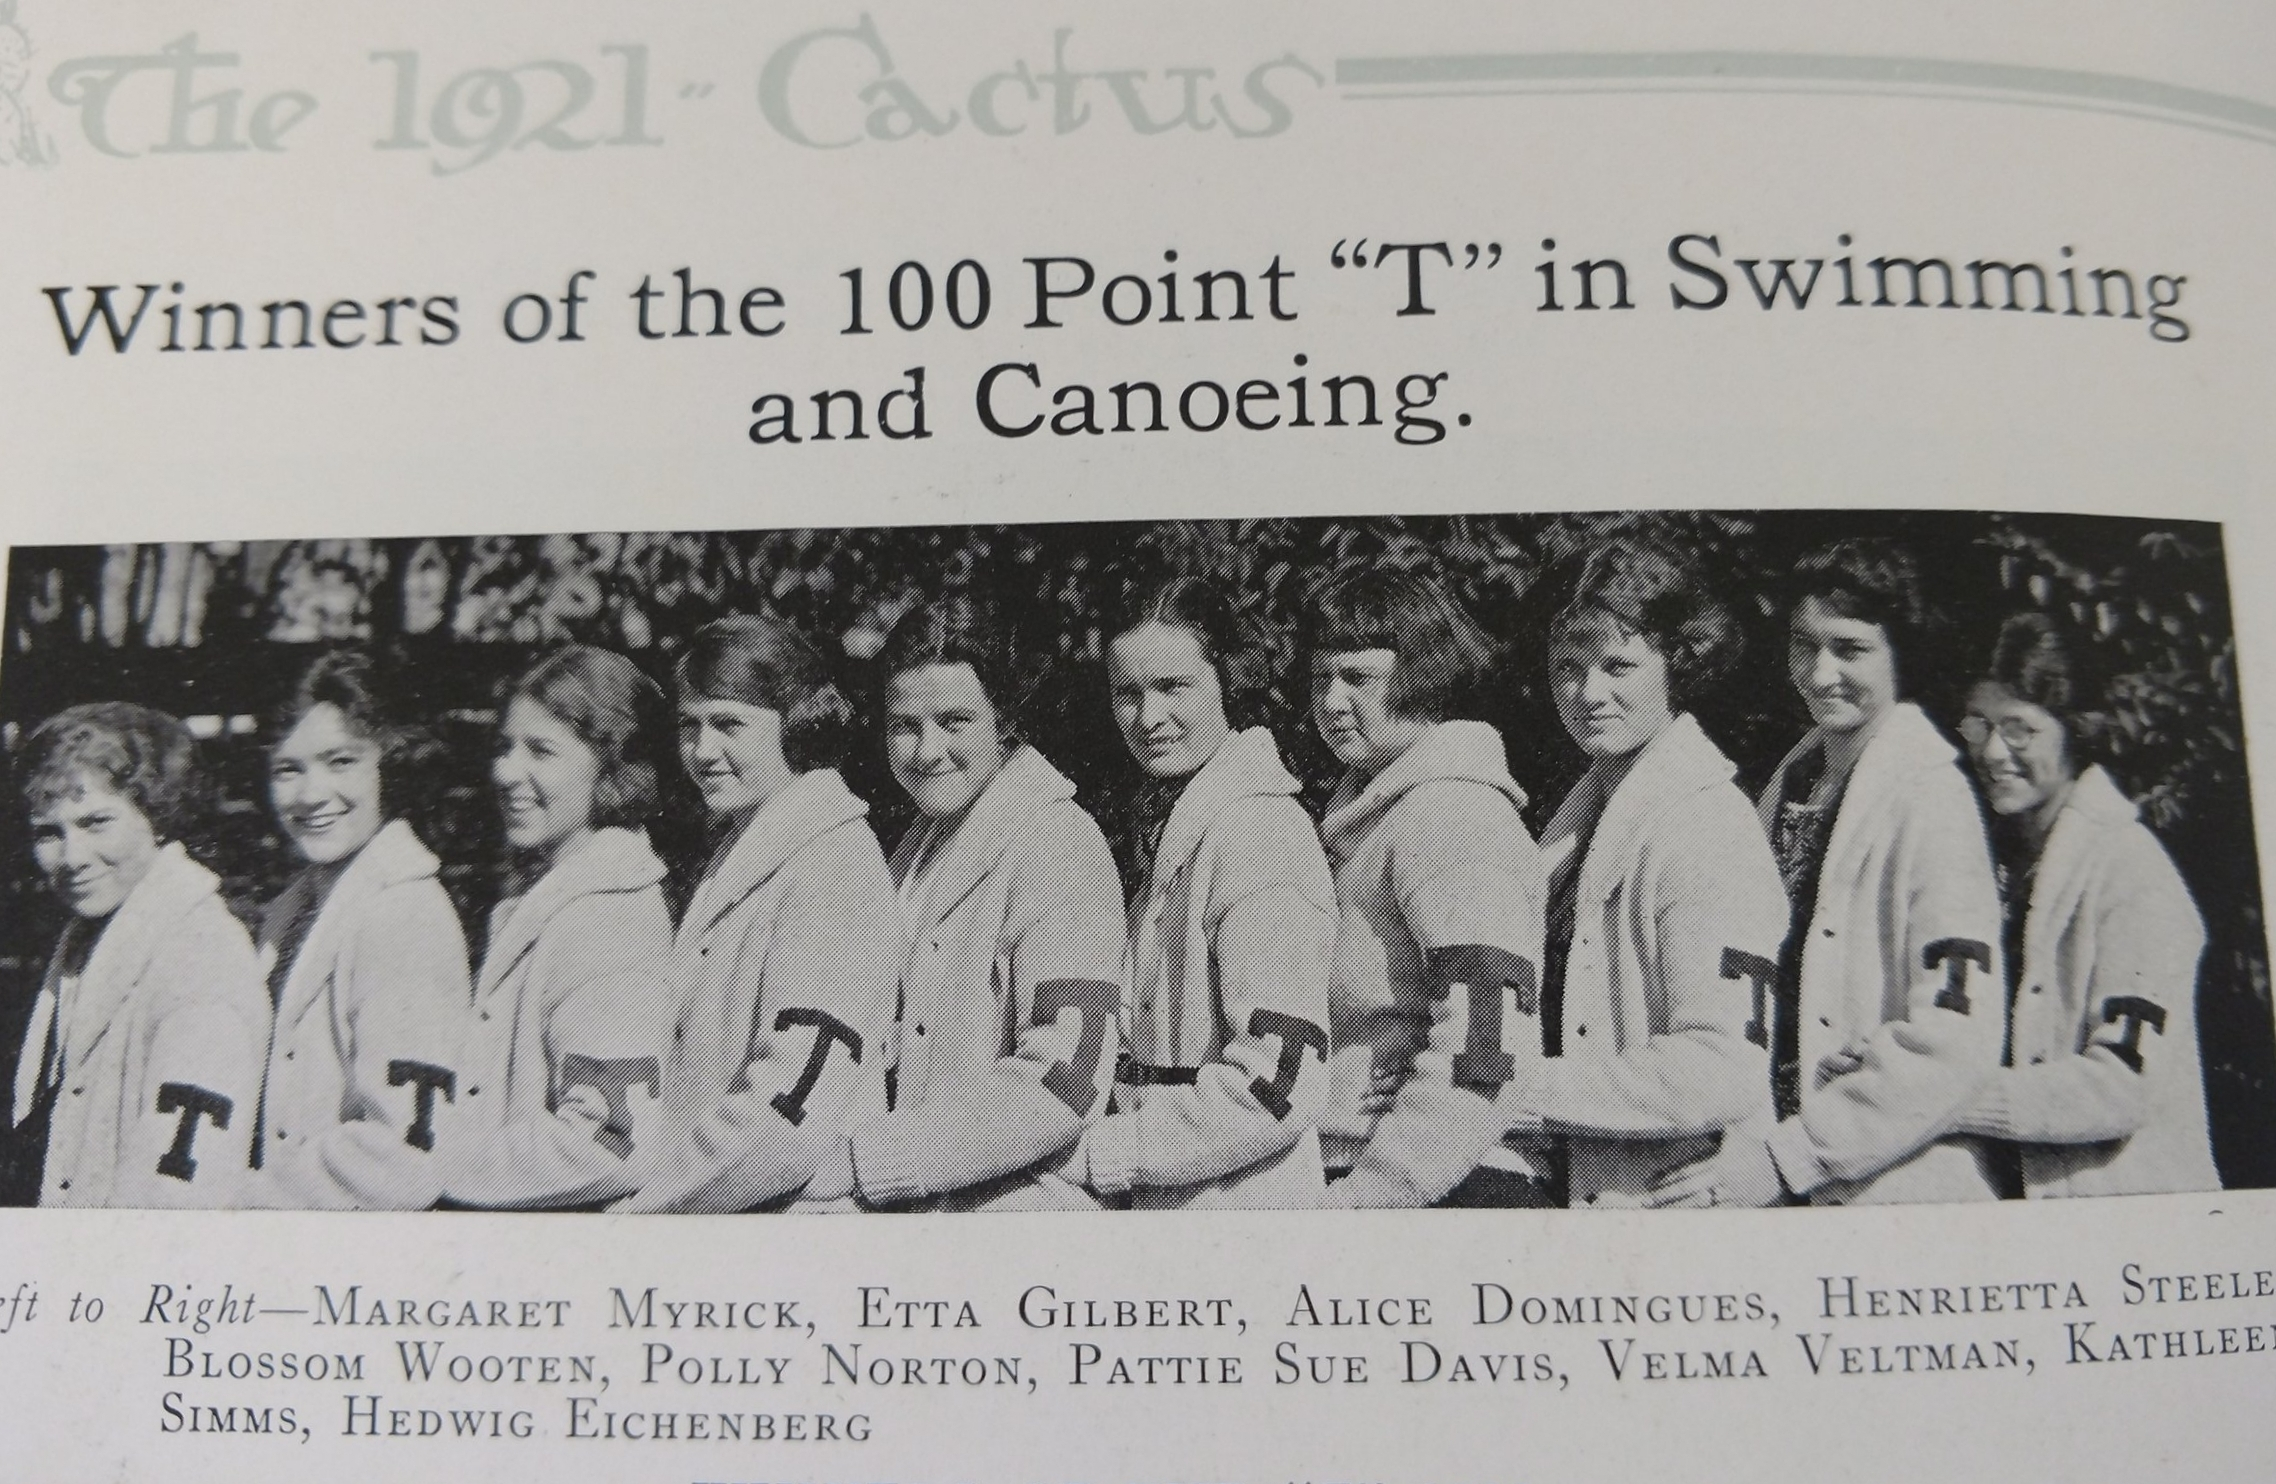 1921 rowing